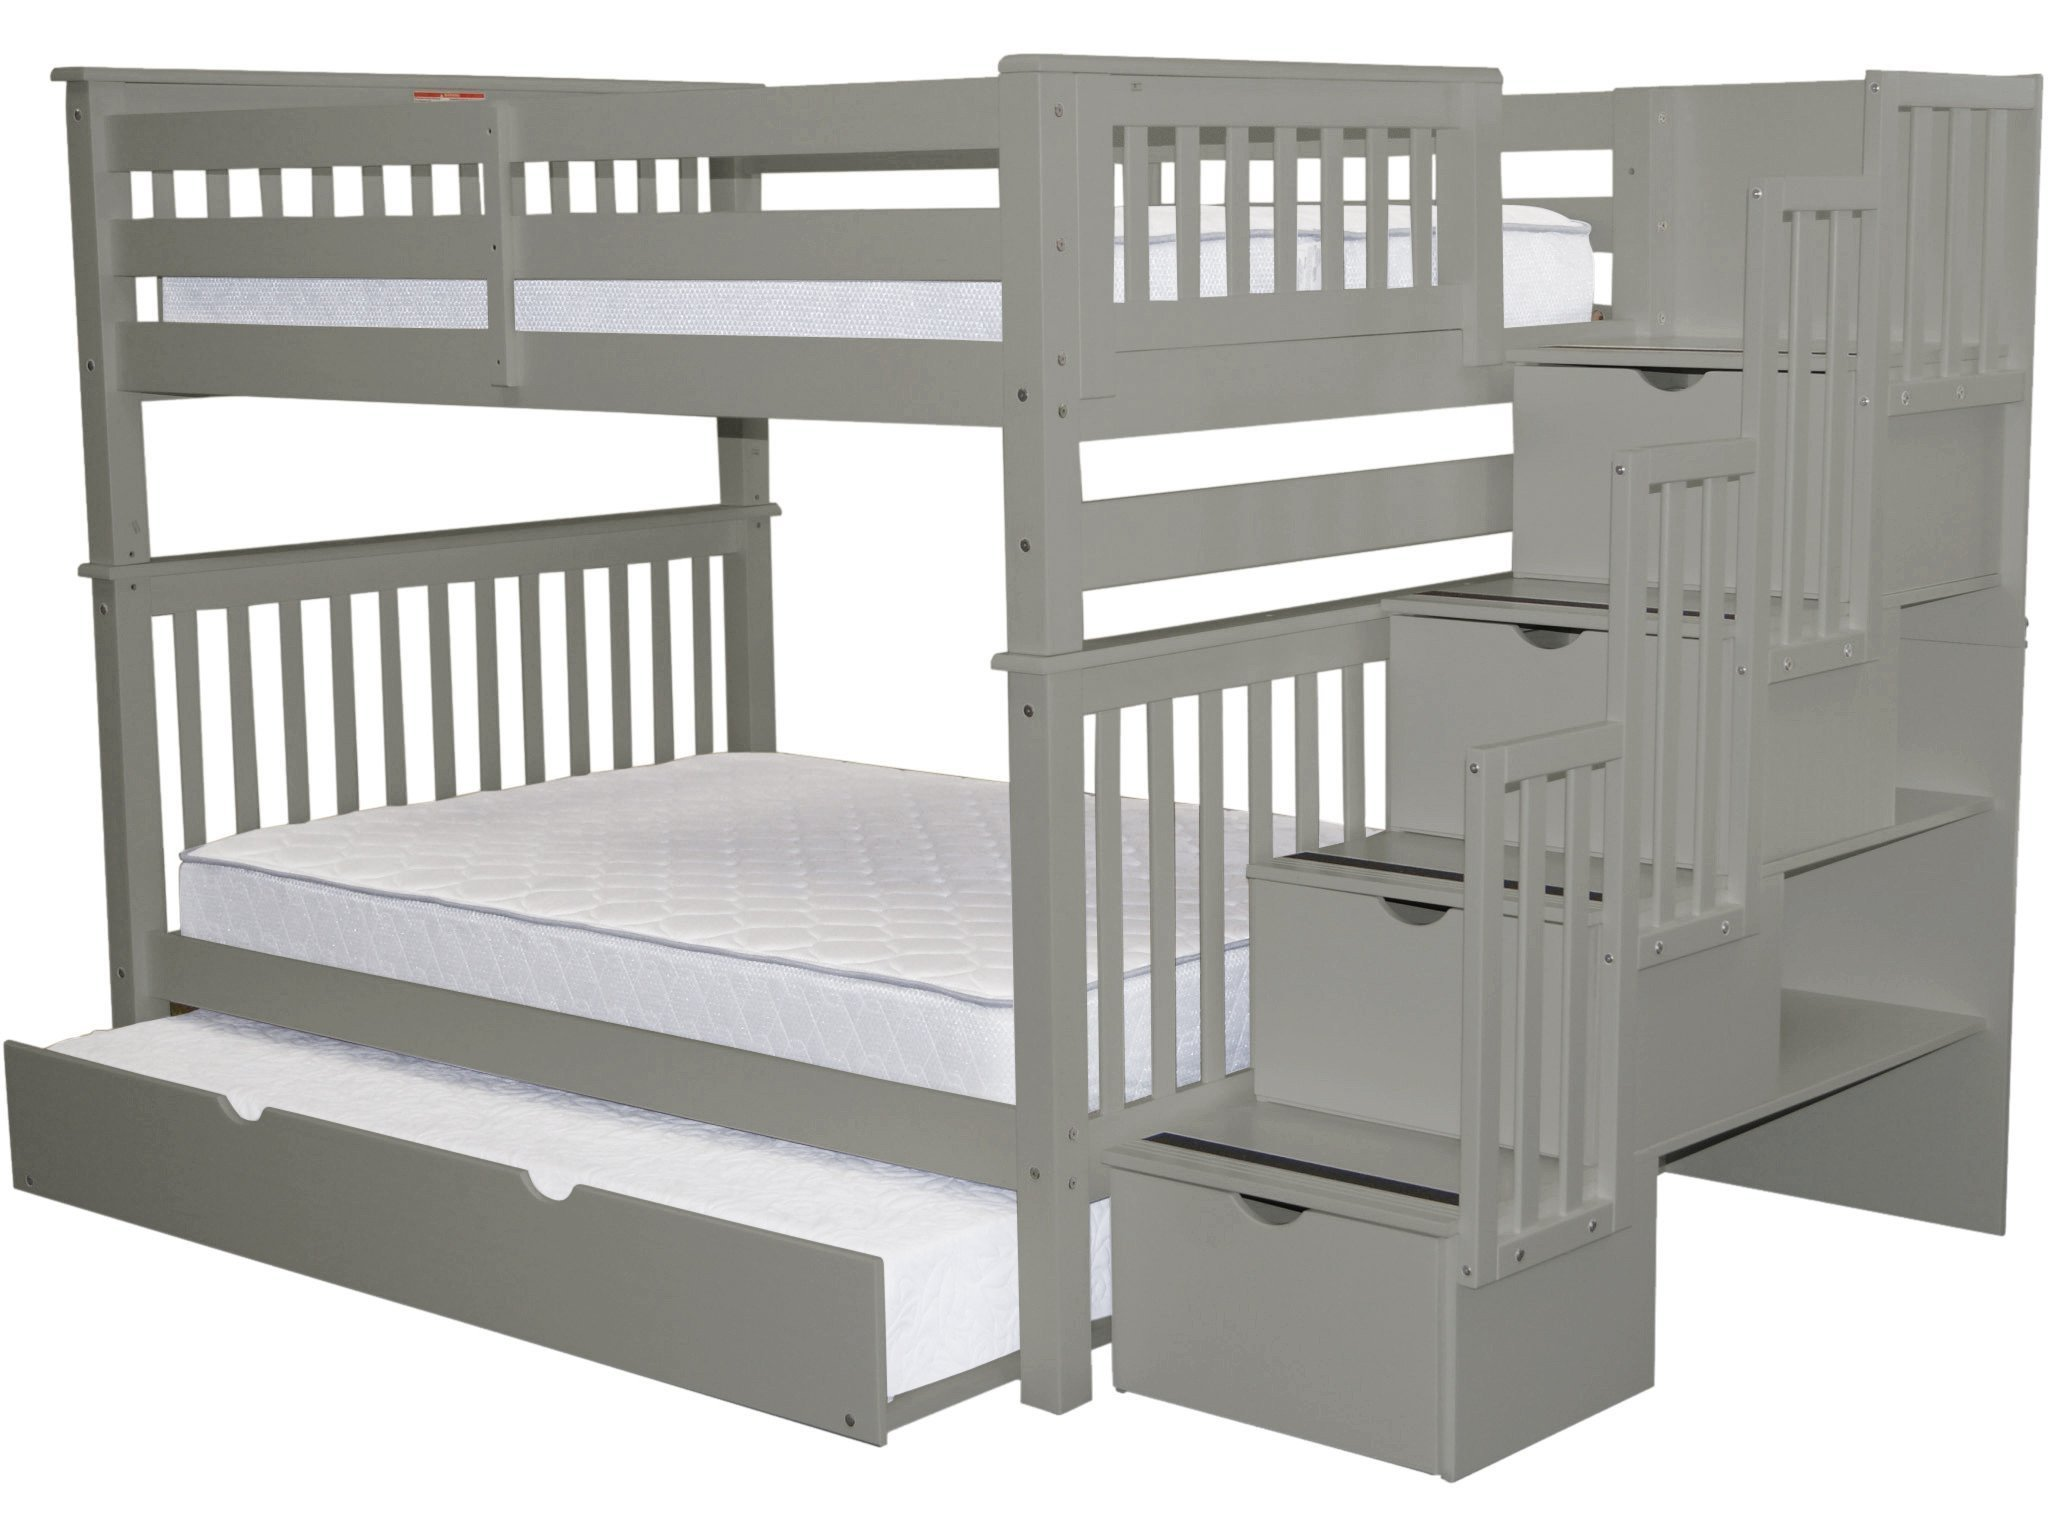 Bedz King Stairway Bunk Beds Full over Full with 4 Drawers in the Steps and a Full Trundle, Gray by Bedz King